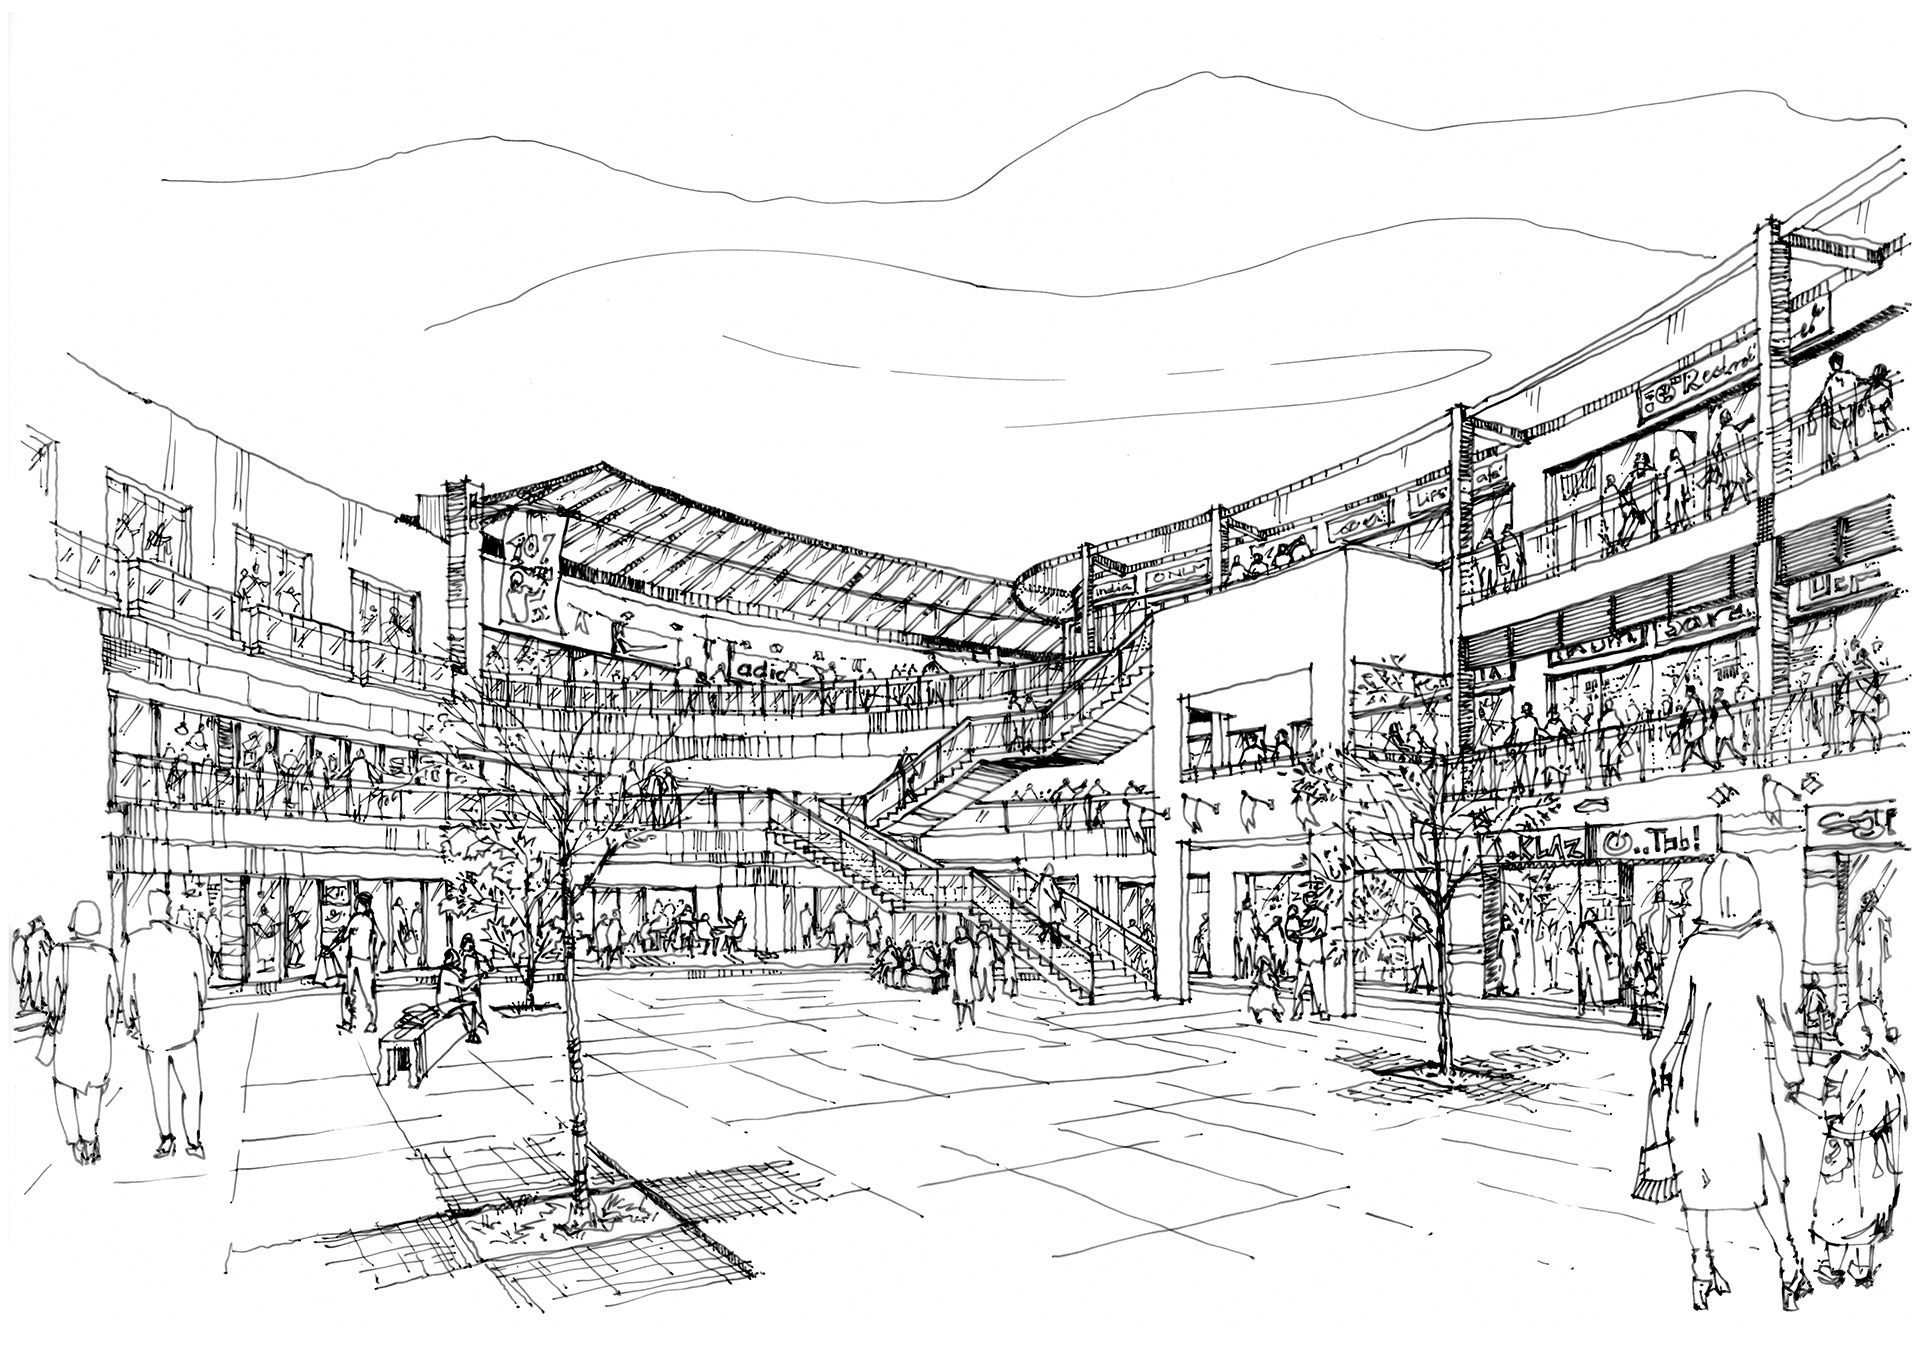 Mobility, trade and respite - proposal for retail development | Great Wide Public Realm | STIRworld